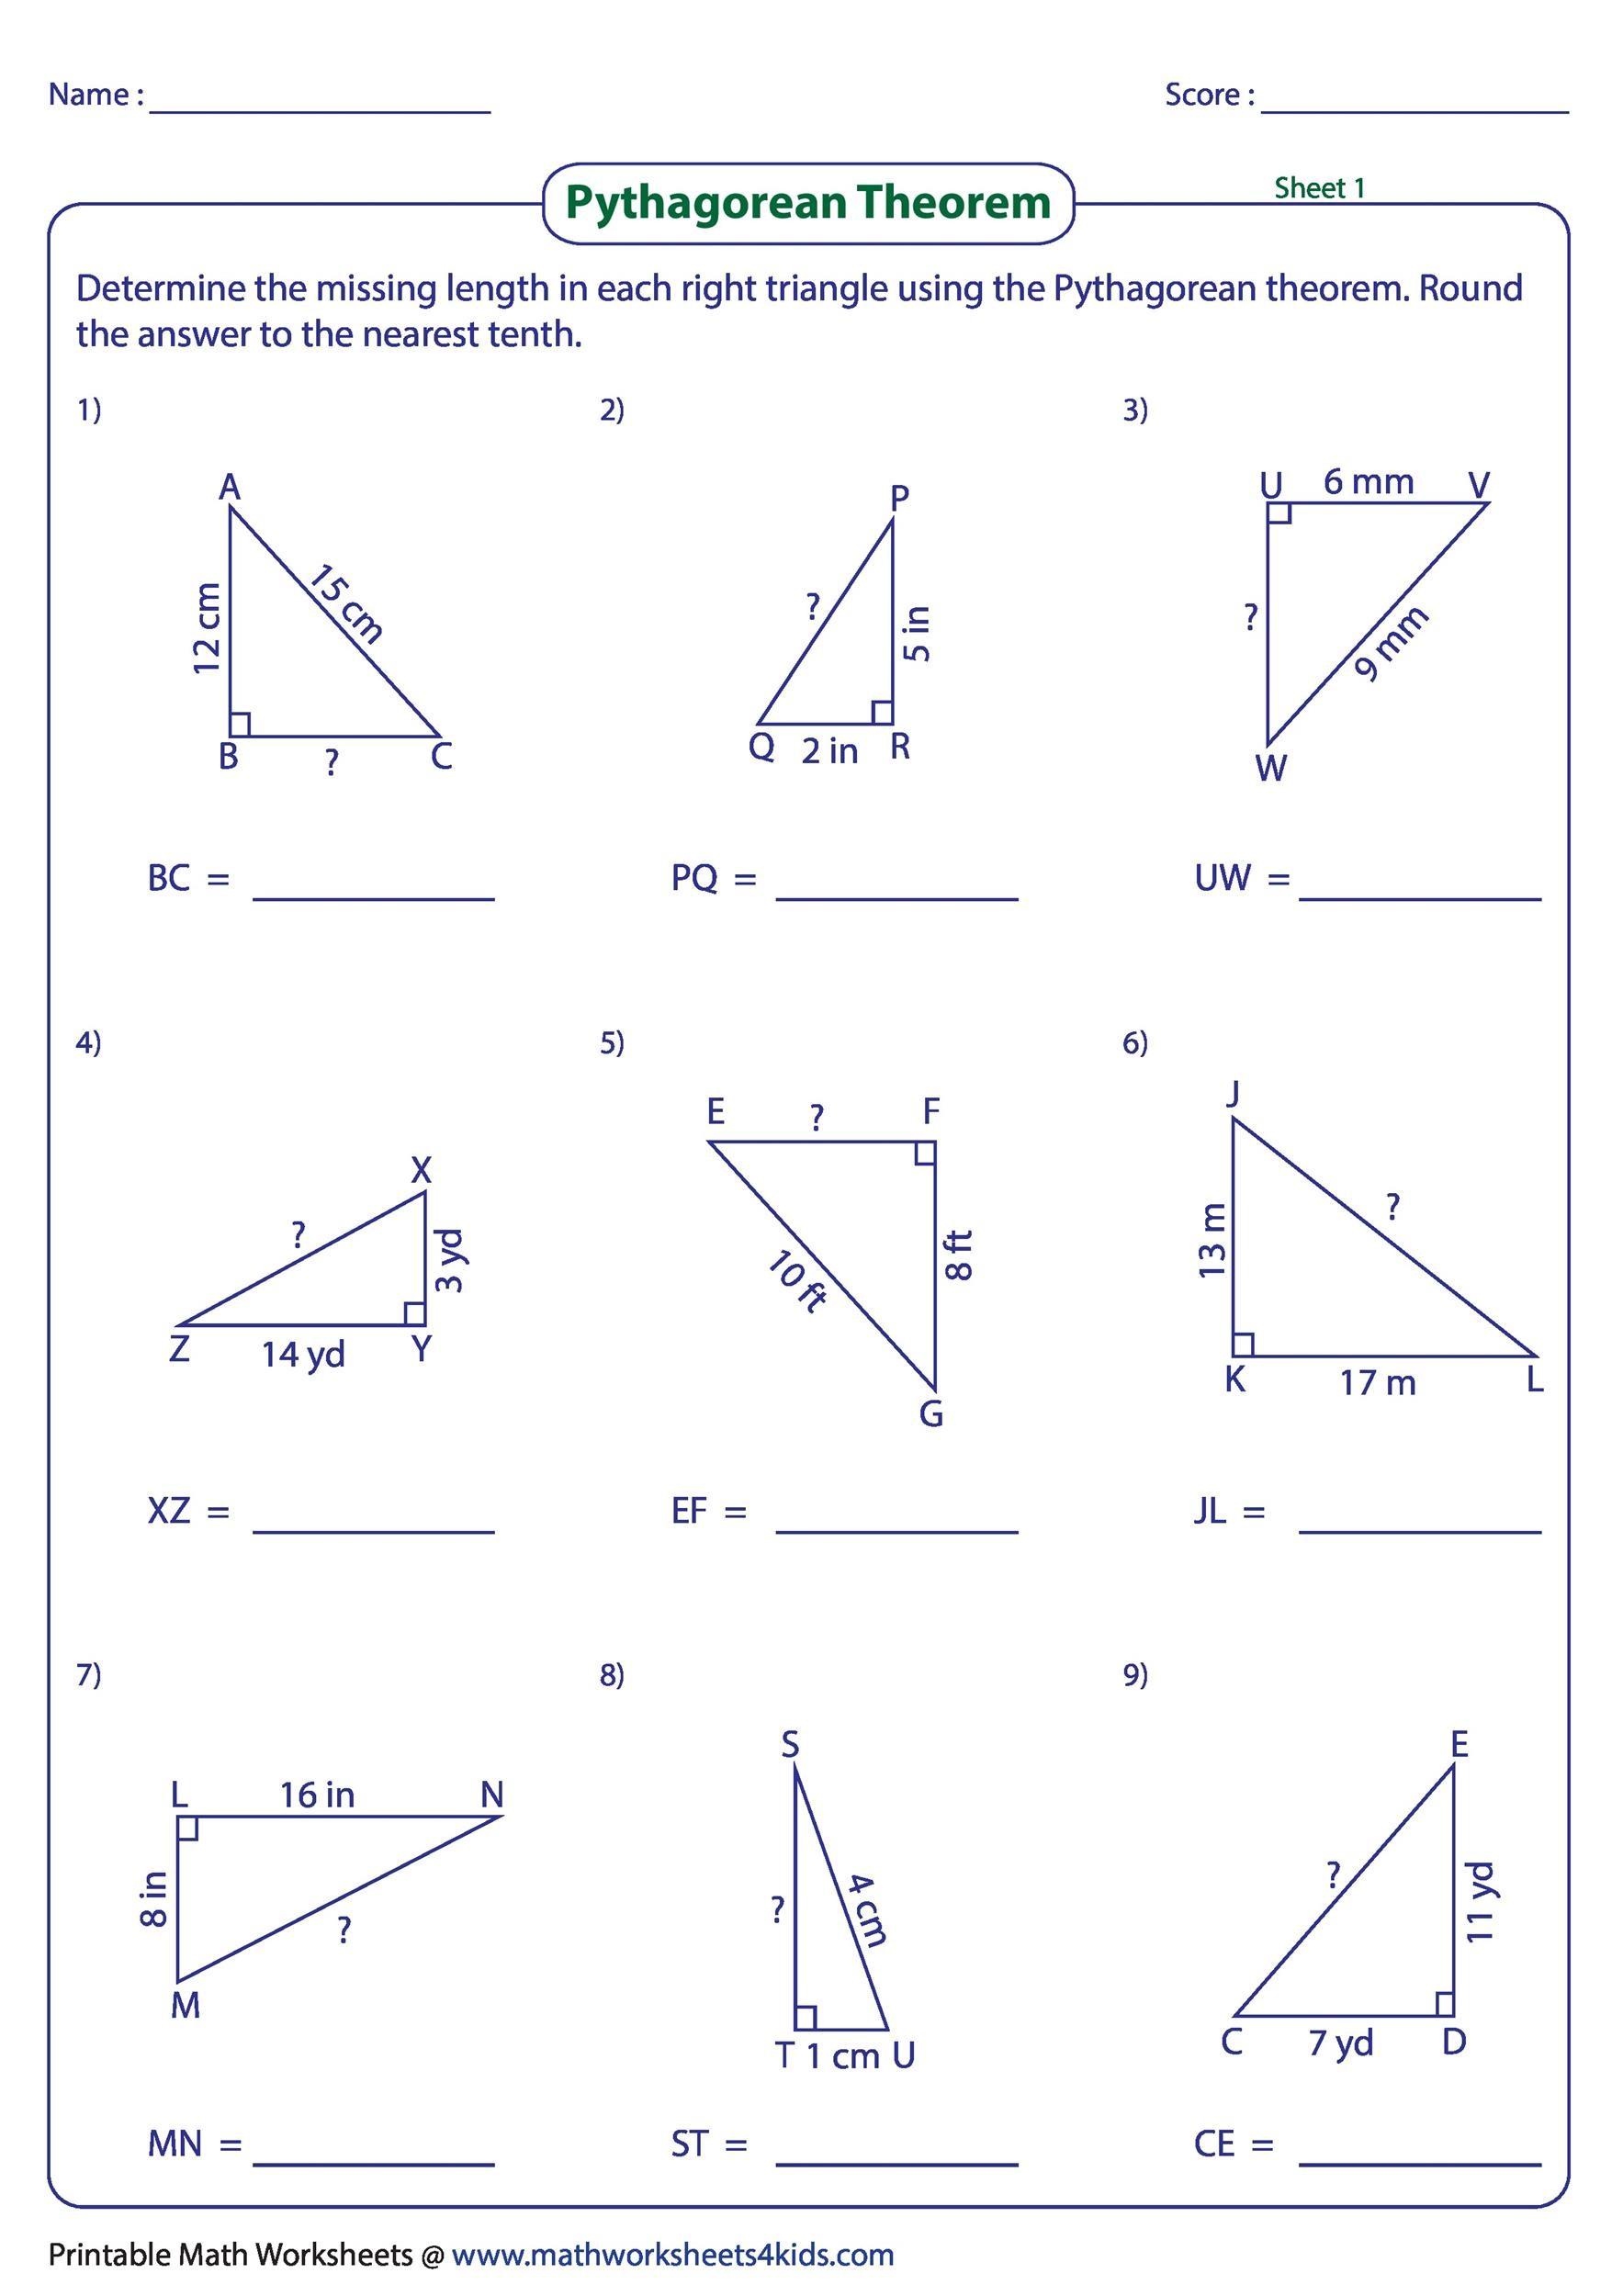 hight resolution of 34 Pythagorean Theorem Worksheet Answer Key - Worksheet Project List